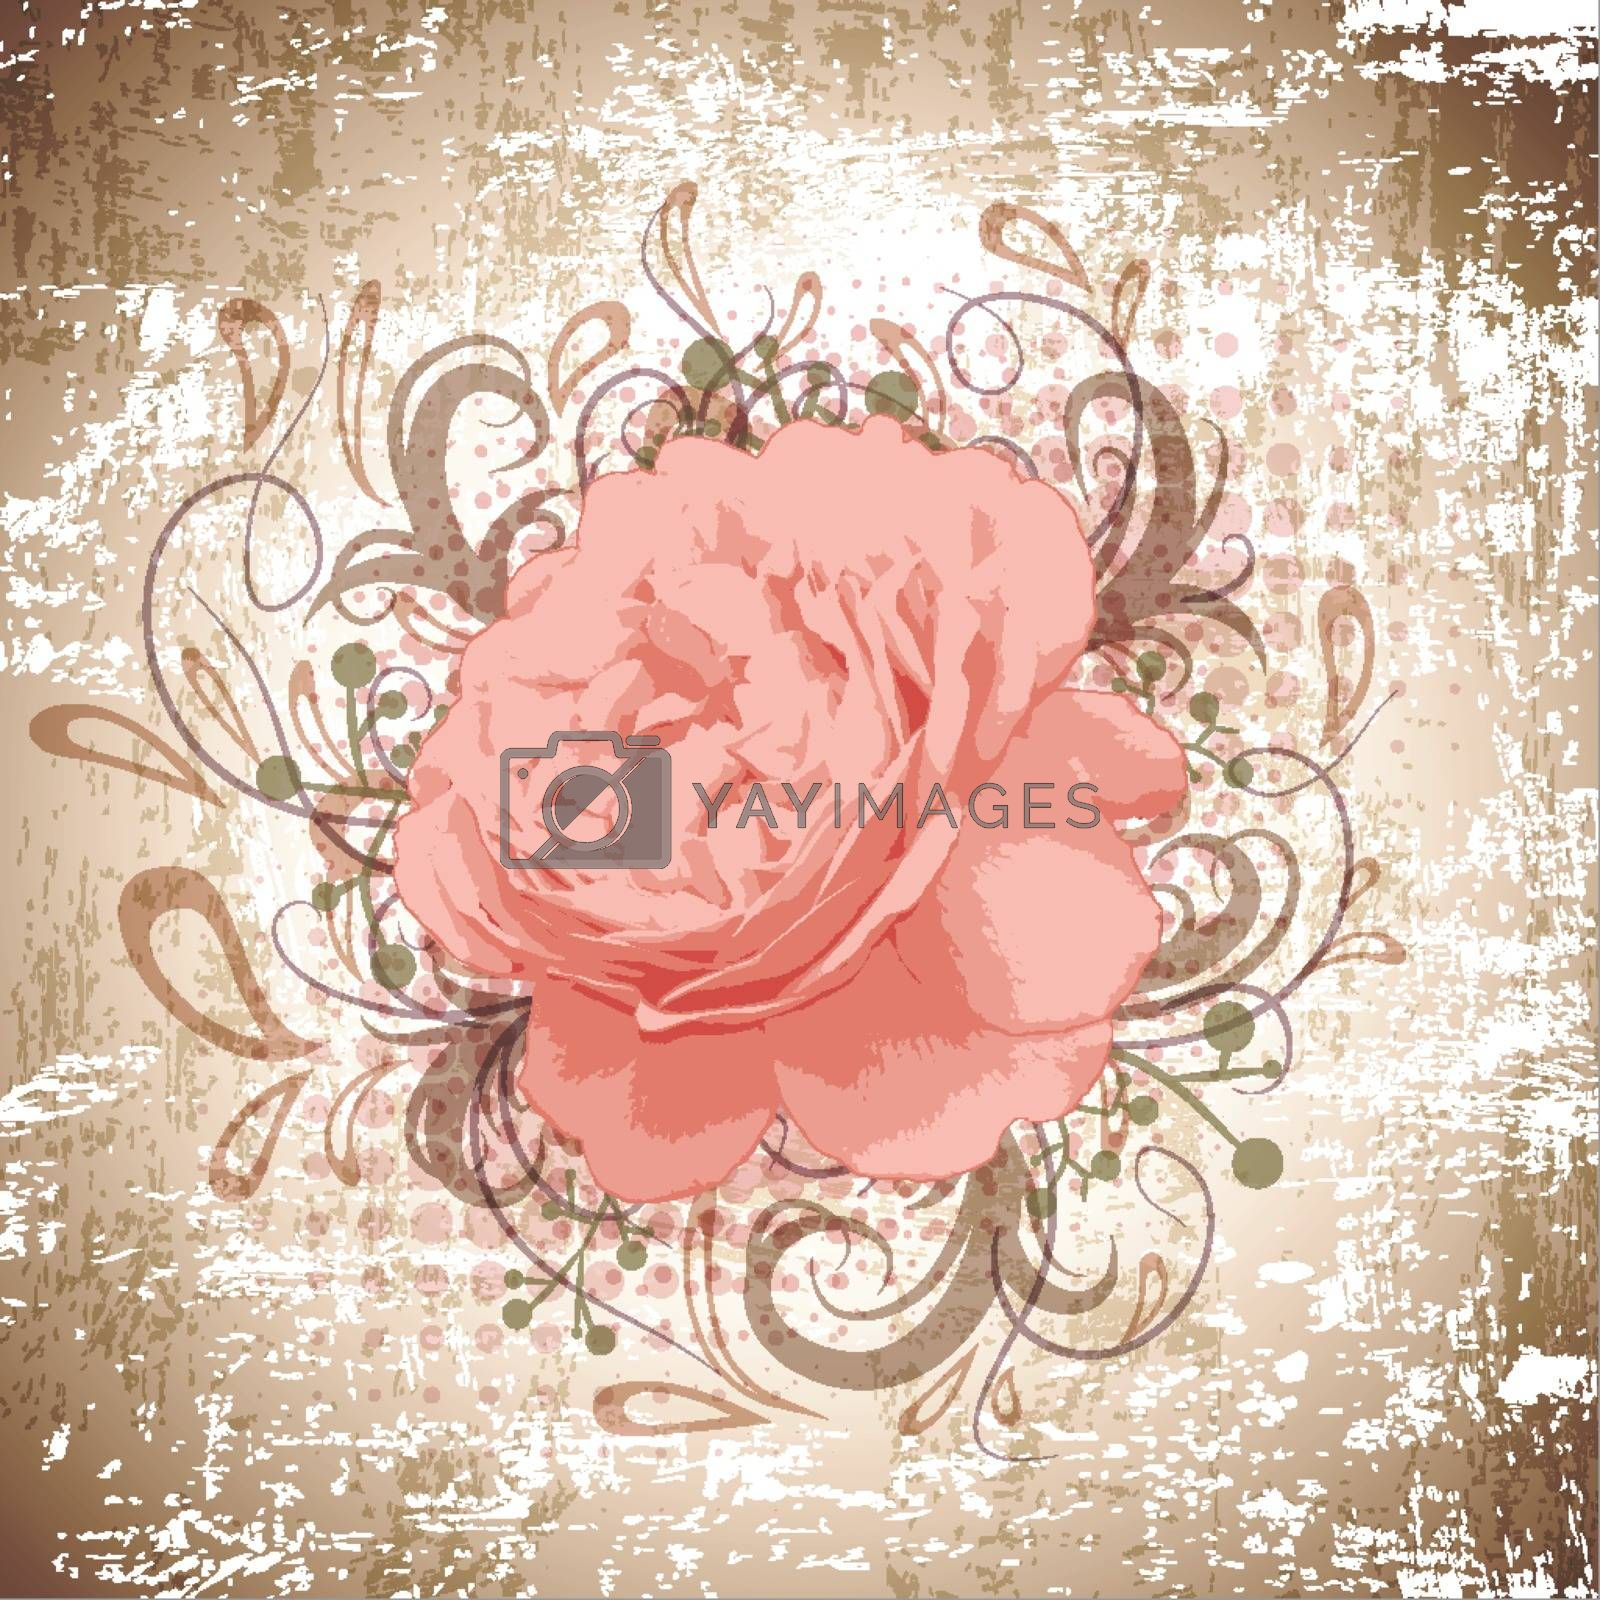 Grunge Background of Vintage Abstract Peony Flower With Floral Decoration